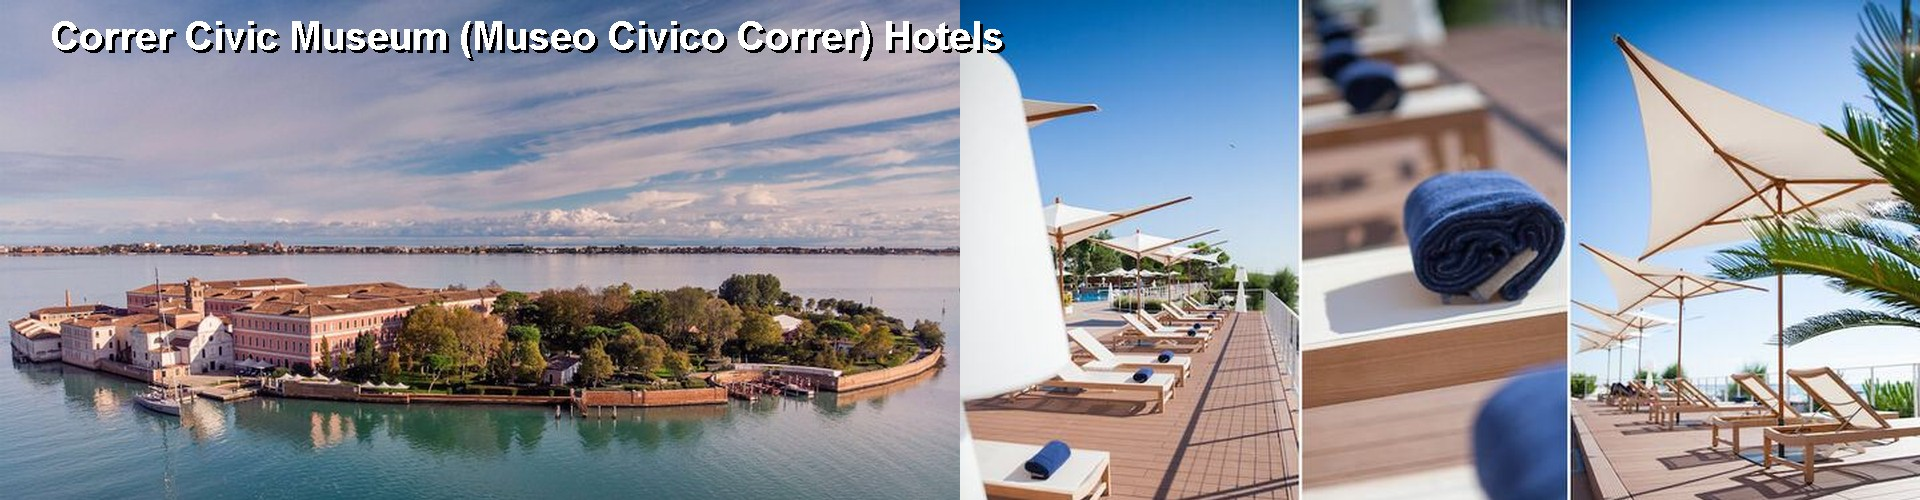 5 Best Hotels near Correr Civic Museum (Museo Civico Correr)